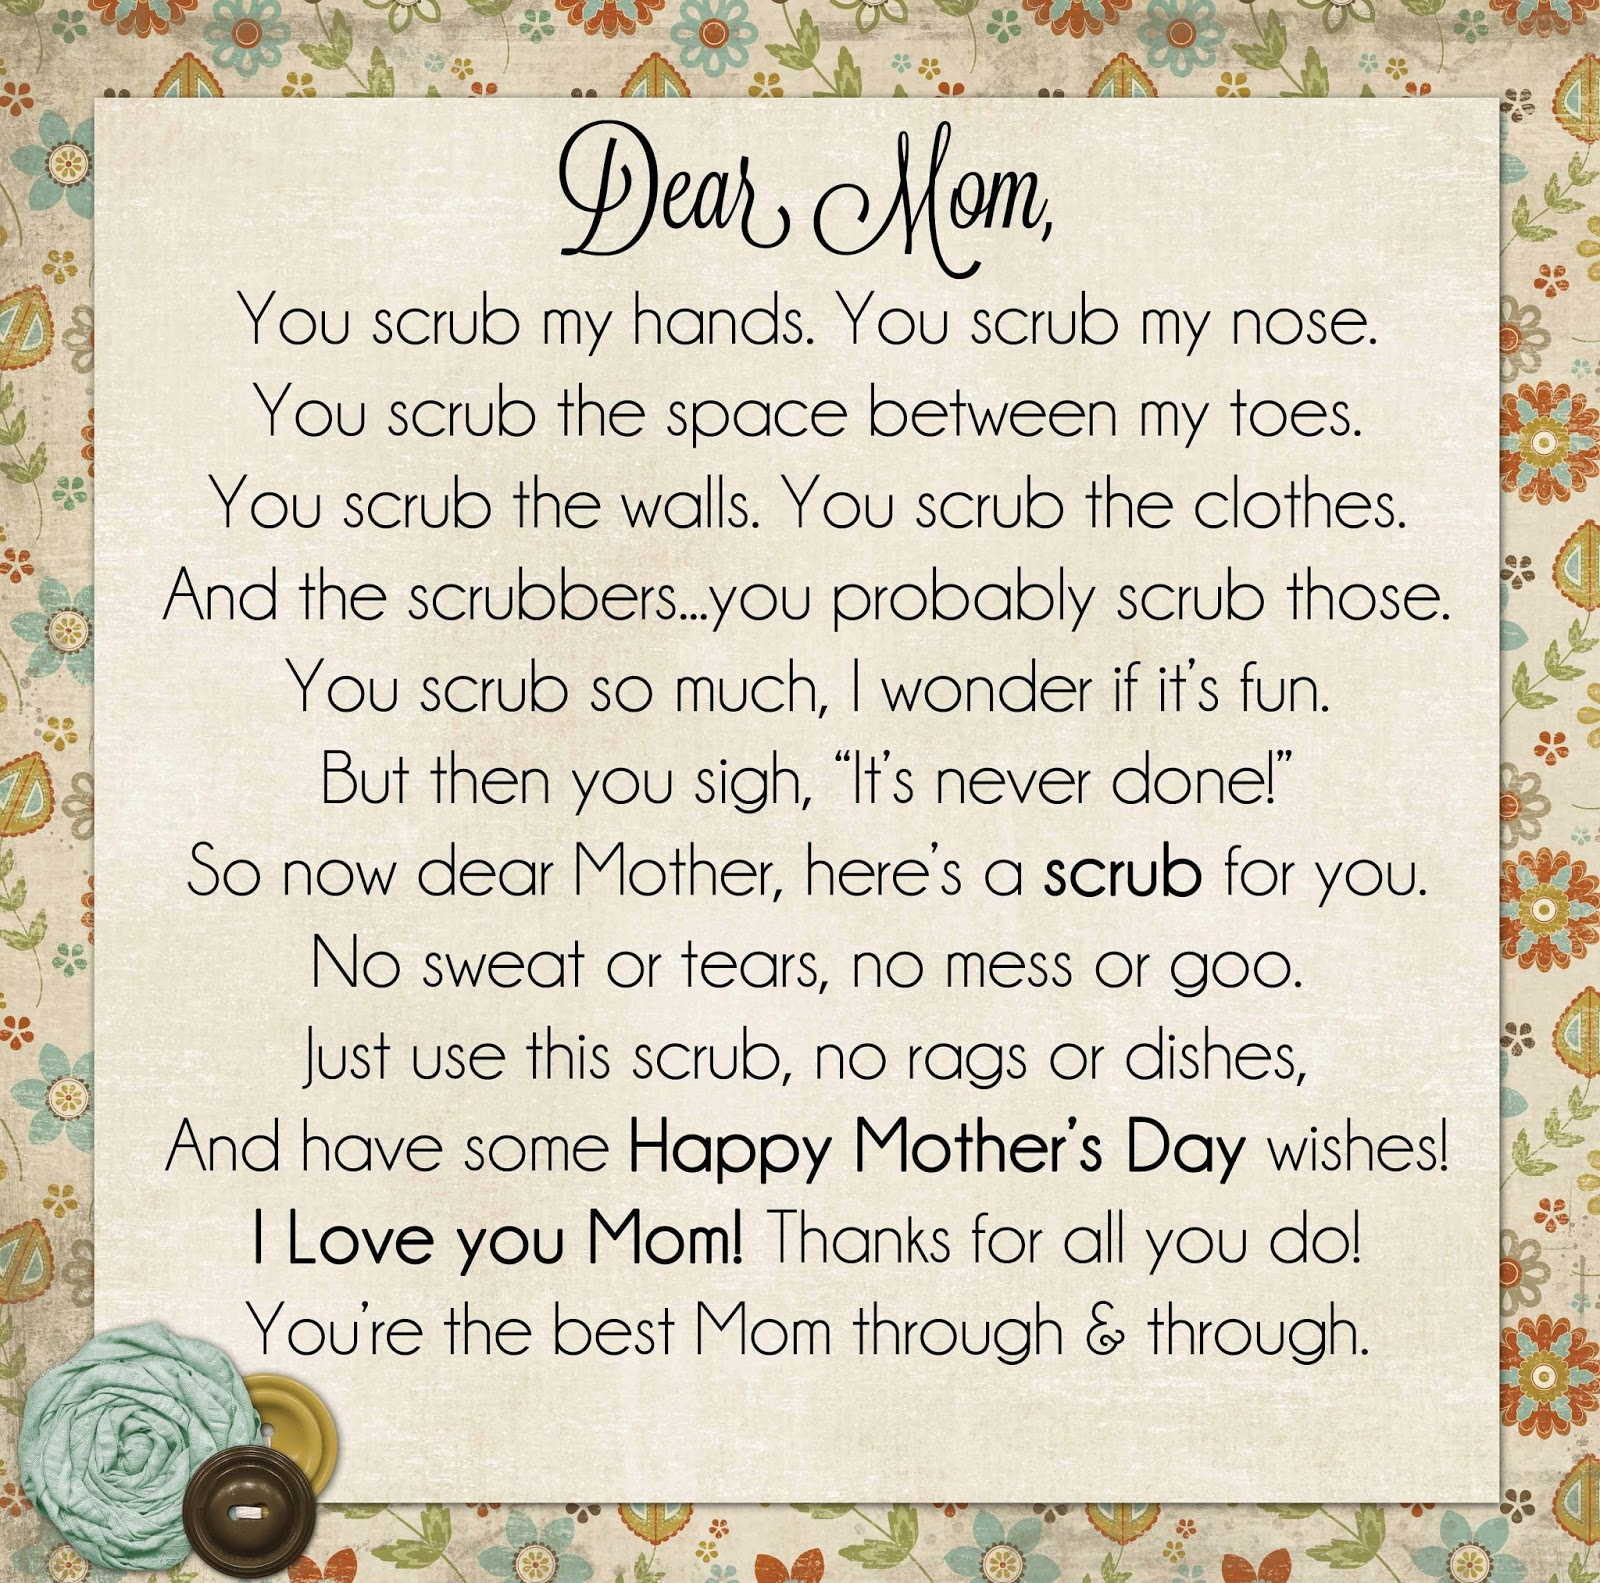 Happy Mothers Day Poems Images u0026 Pictures - Becuo